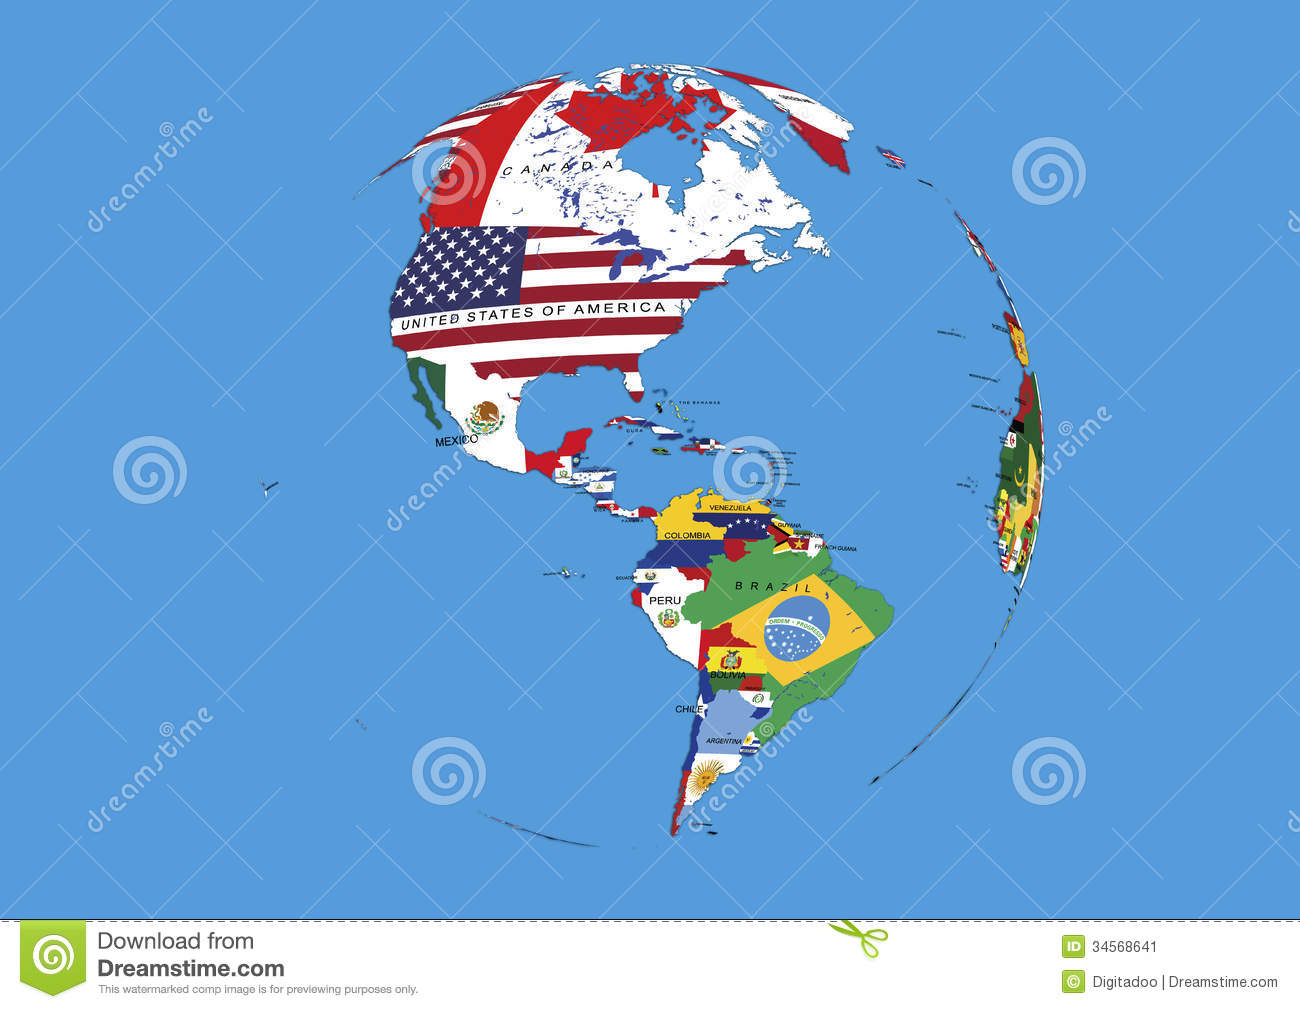 World Map Hemispheres Countries. West hemisphere North South America world globe flags map Hemisphere World Globe Flags Map Stock